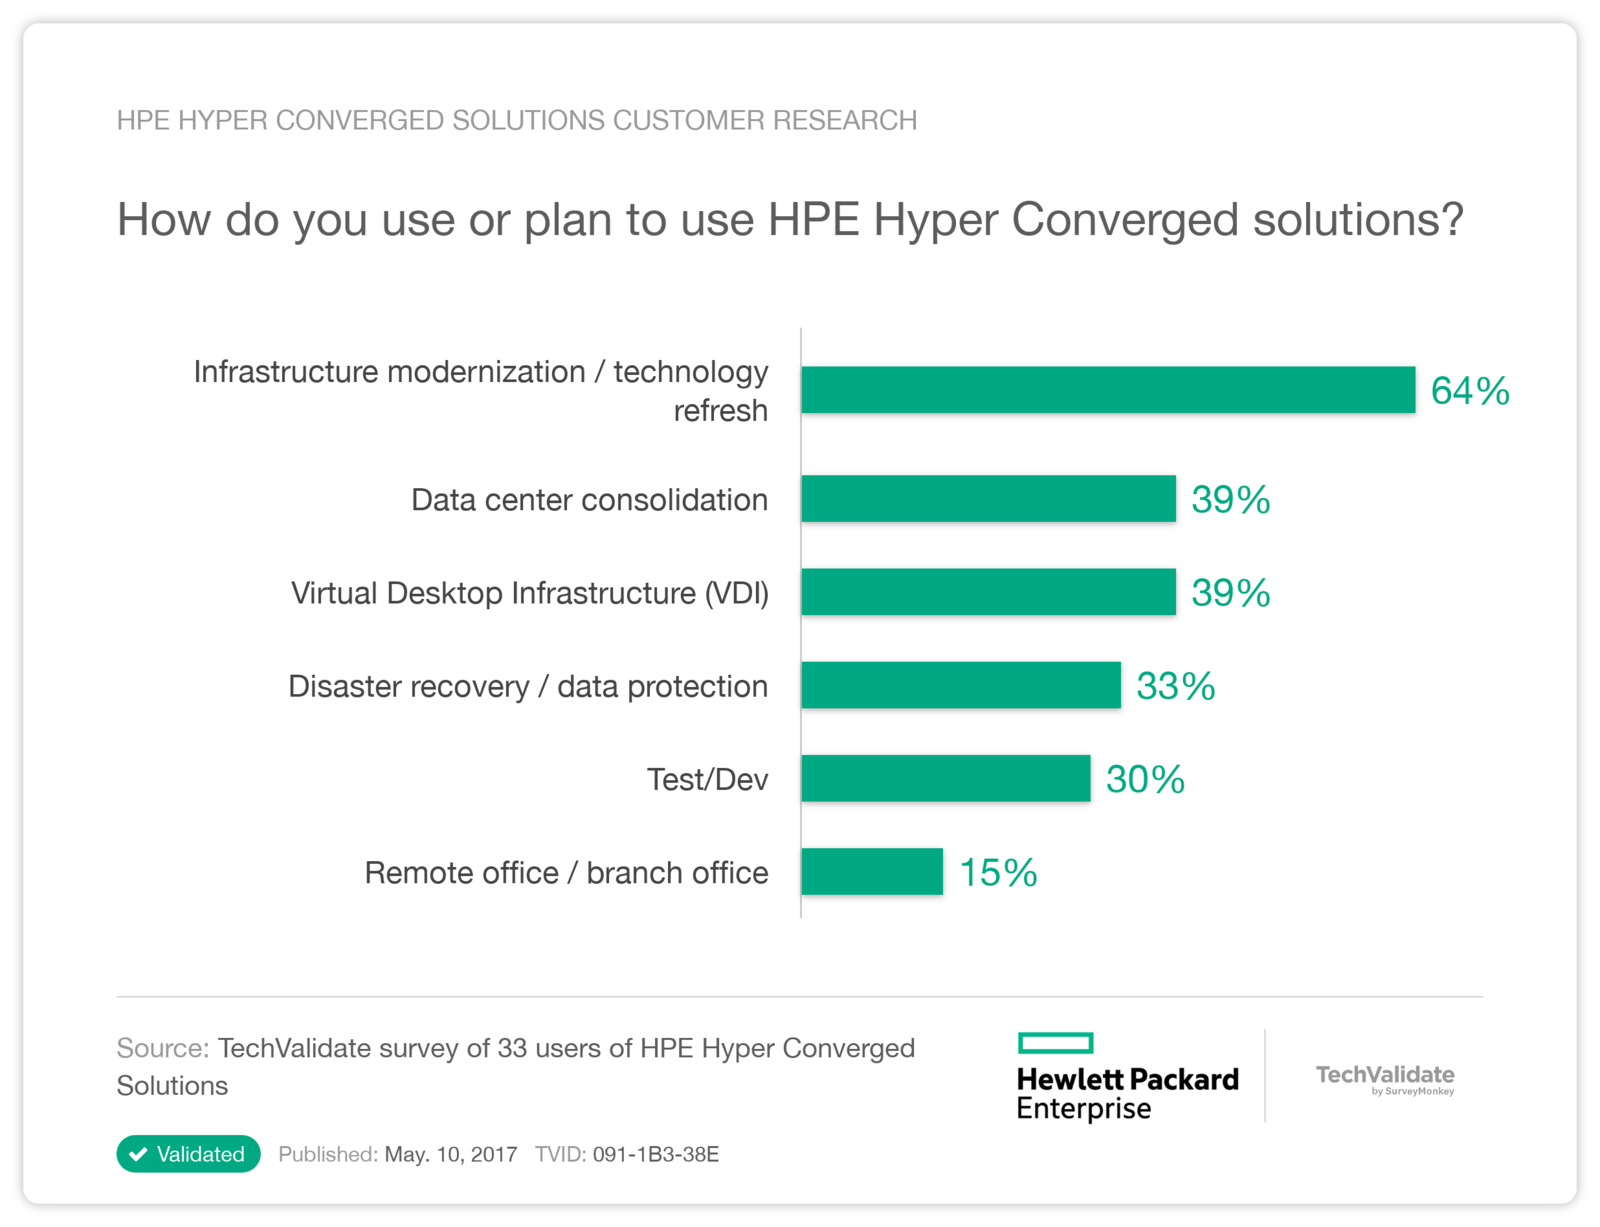 HPE Hyper Converged Solutions Customer Research